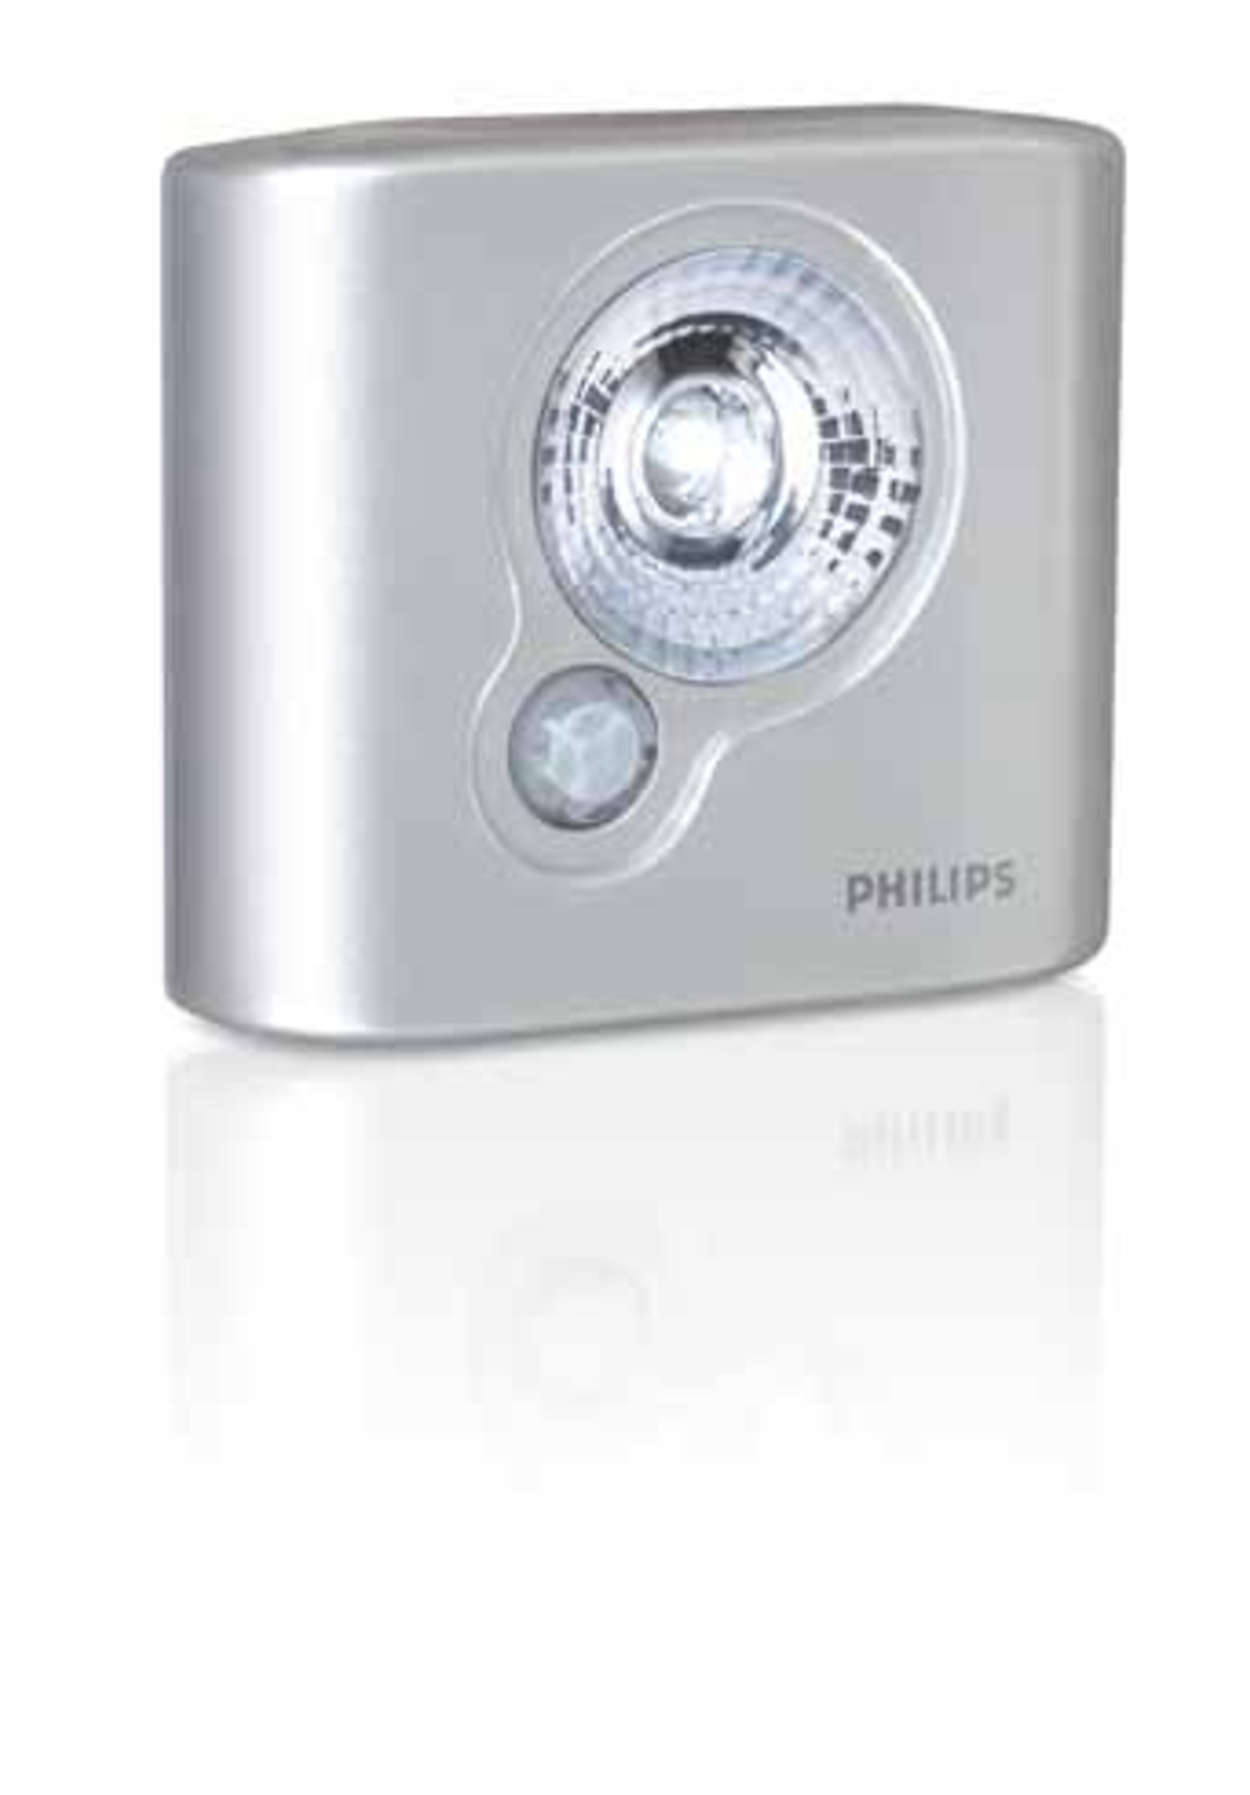 LED-lamp met batterij LAC52AWSB/10 | Philips